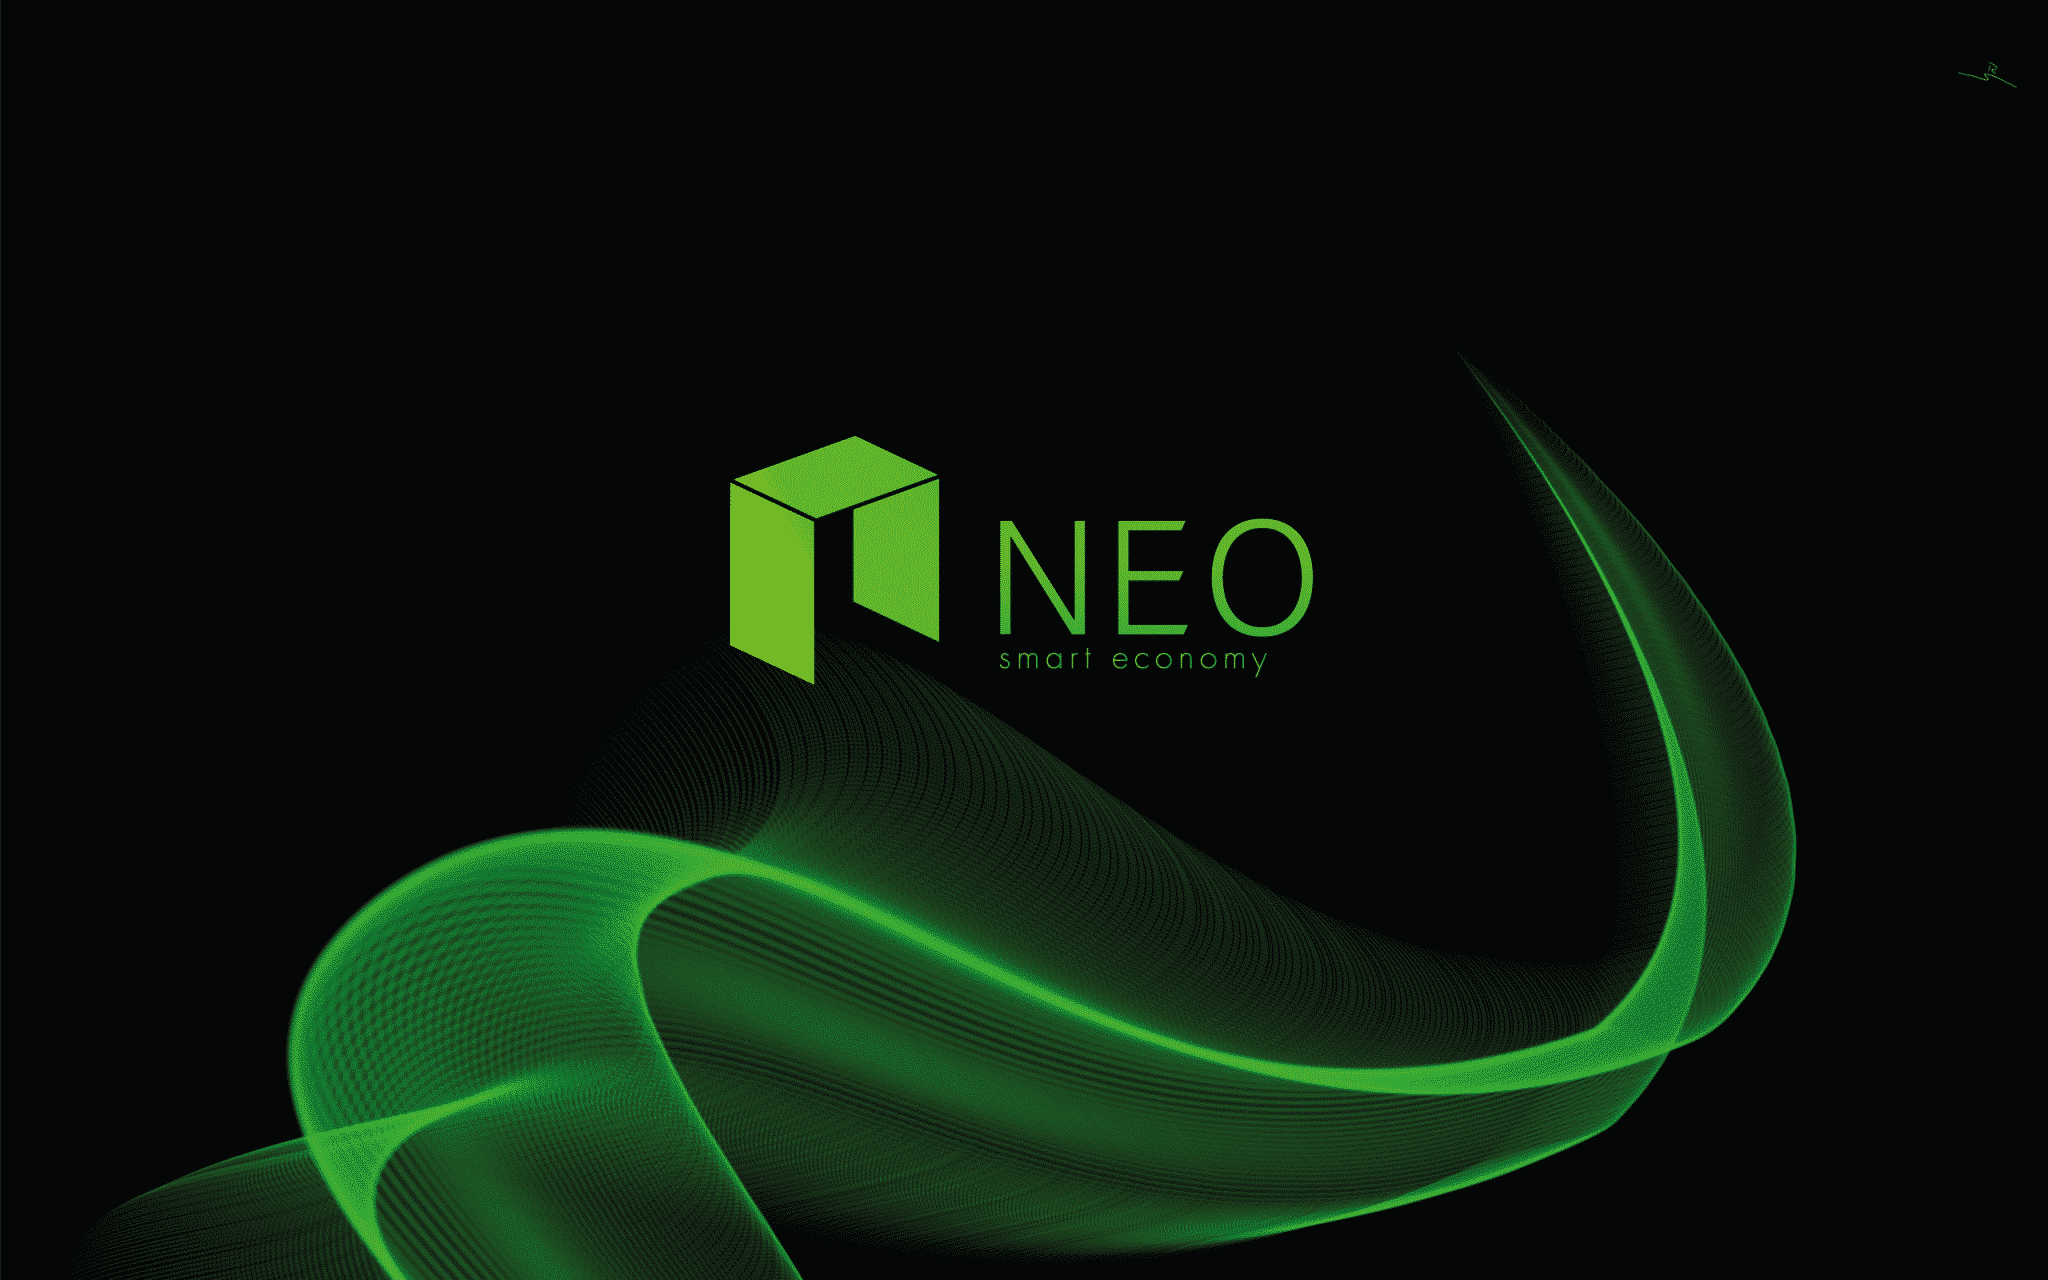 NEOs Rapid Growth and Advancements